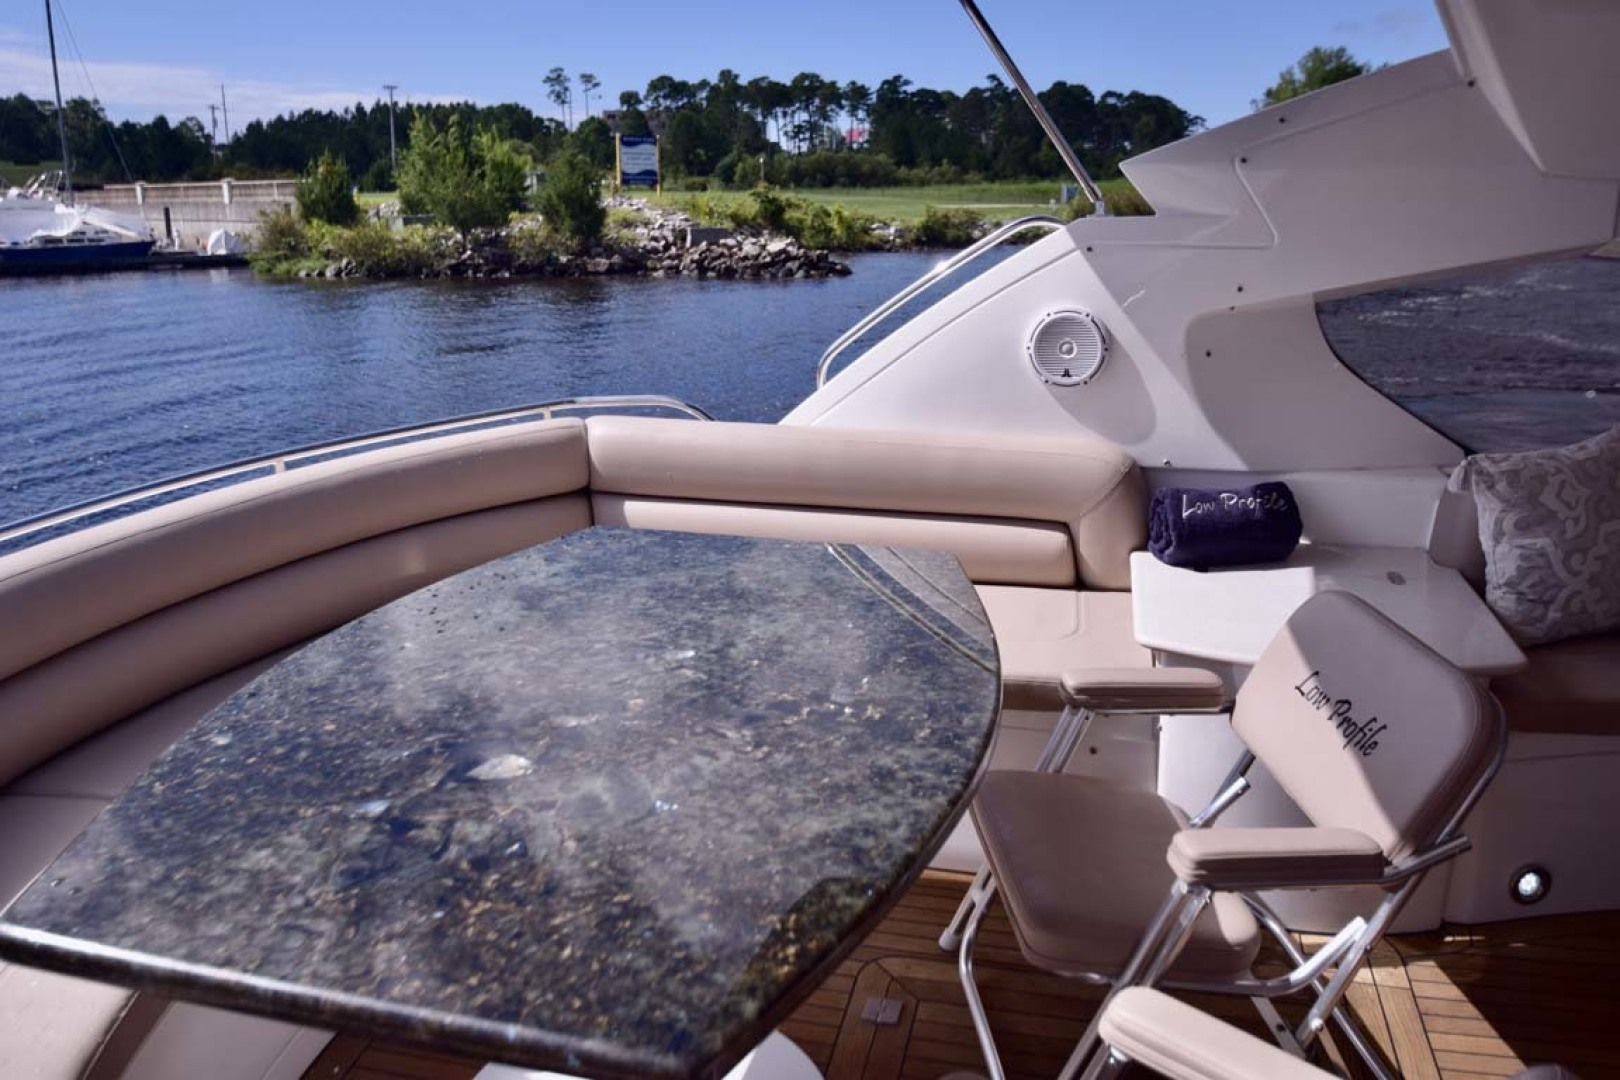 Sunseeker-Predator 2003-Low Profile PALM BEACH-Florida-United States-Aft Table With Seat On Transom-1576386 | Thumbnail